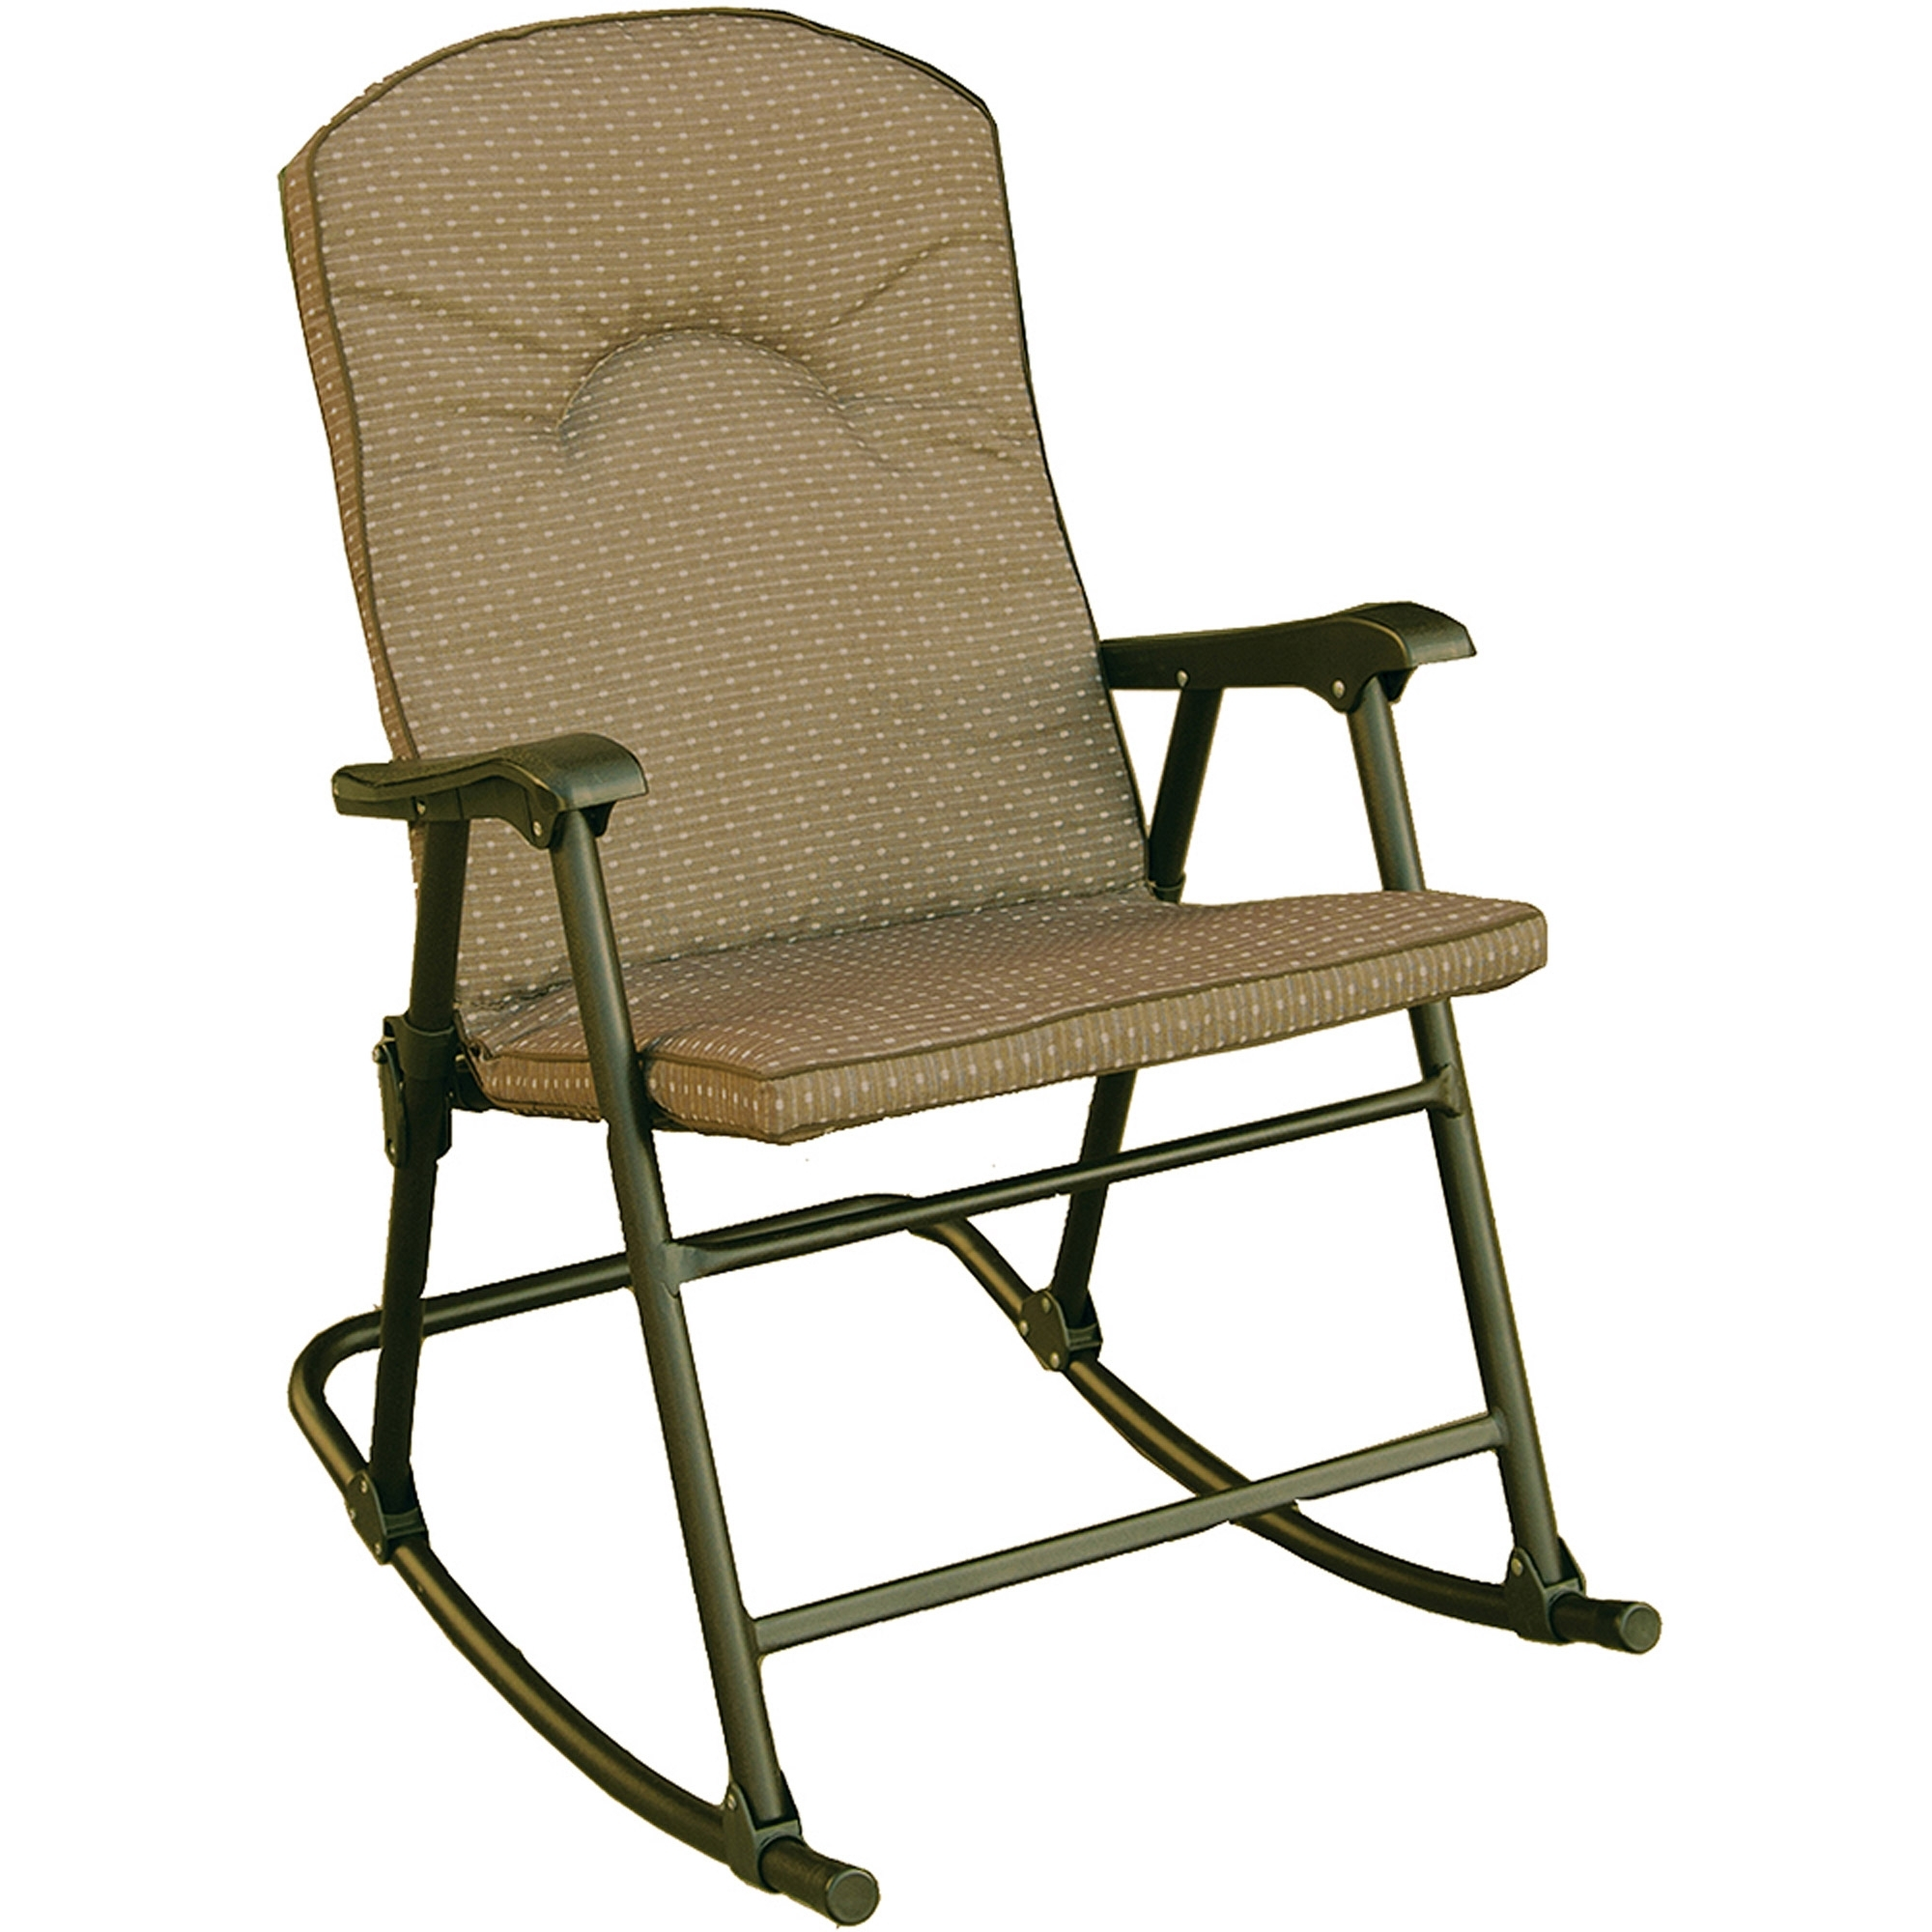 Inspiration about Prime Products Cambria Padded Rocker, Desert Taupe, 13 6805 Intended For Padded Patio Rocking Chairs (#8 of 15)